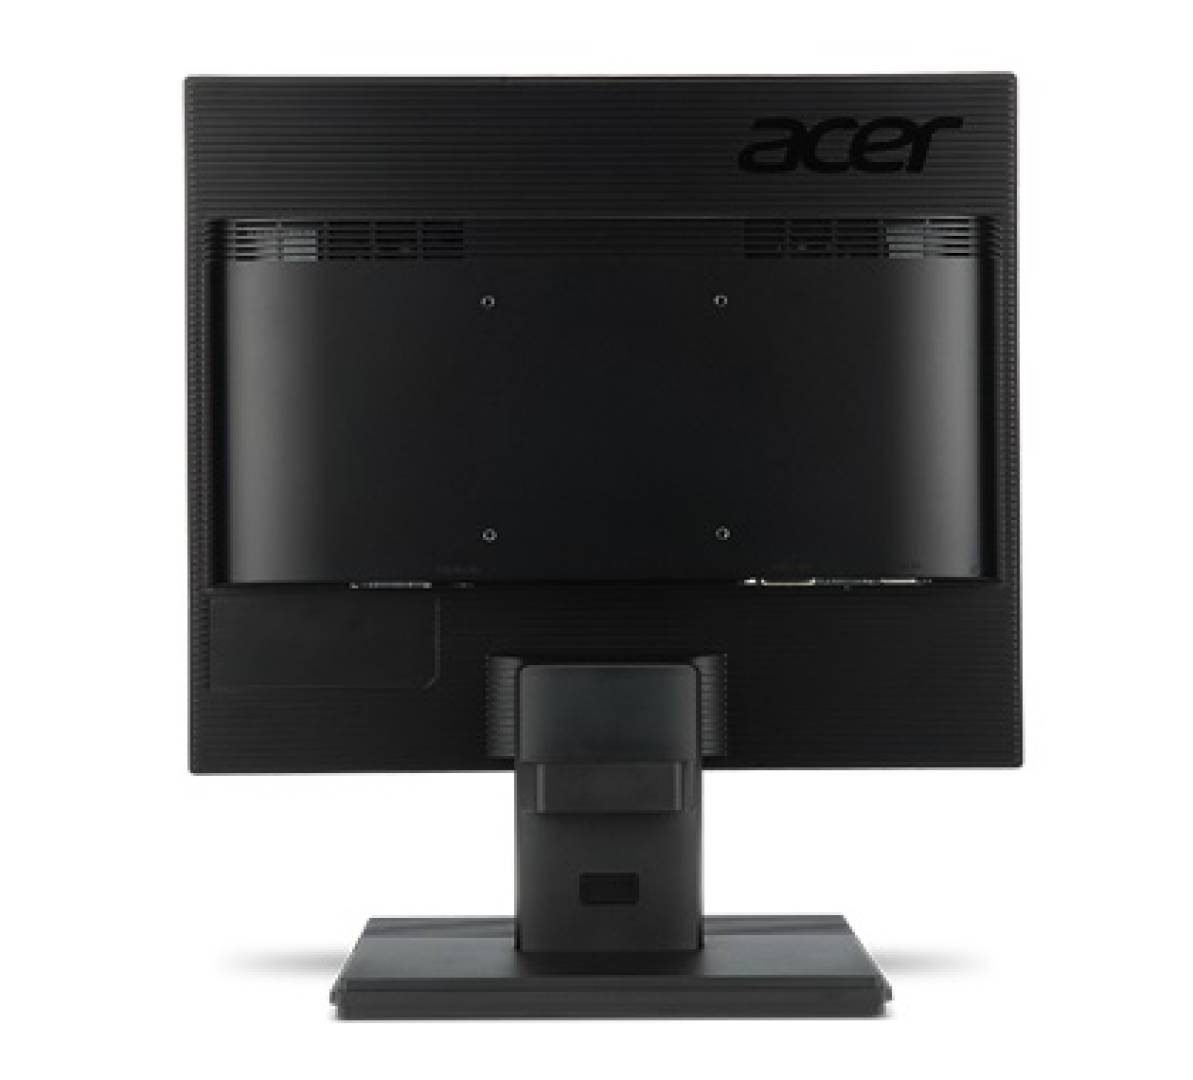 Acer Monitor 17  V176Lb 43cm 5:4 LED 1280x1024(SXGA) 5ms 100M:1